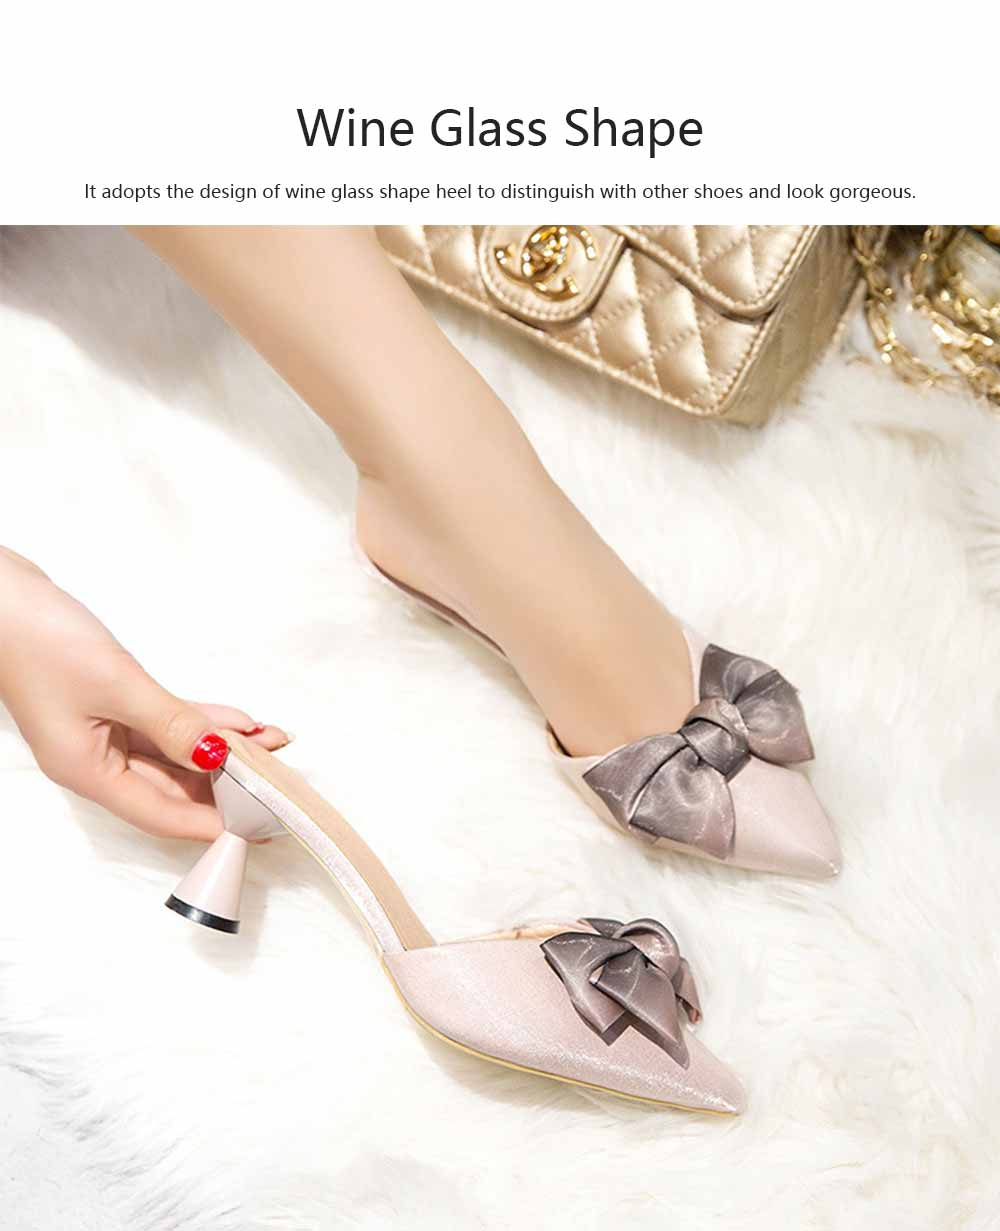 Bowknot High-heeled Sandals for Women Comfortable Breathable Non-slip Wear-resisting Wine Glass Shape High-heeled Slippers 1